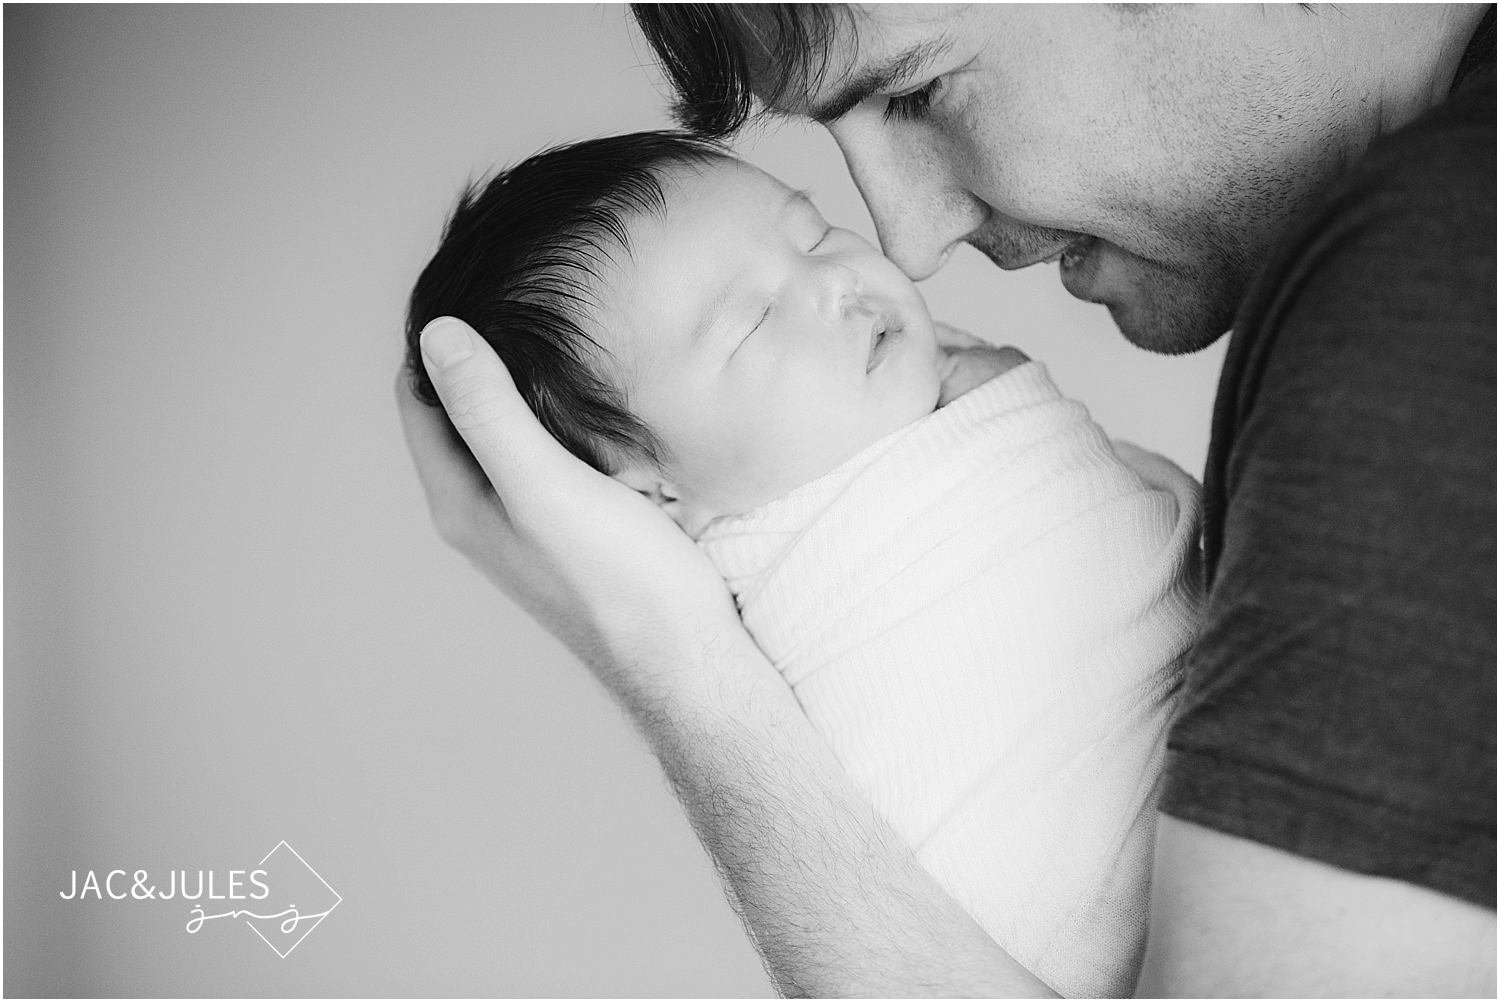 jacnjules photographs newborn lifestyle photos in their nursery in new jersey